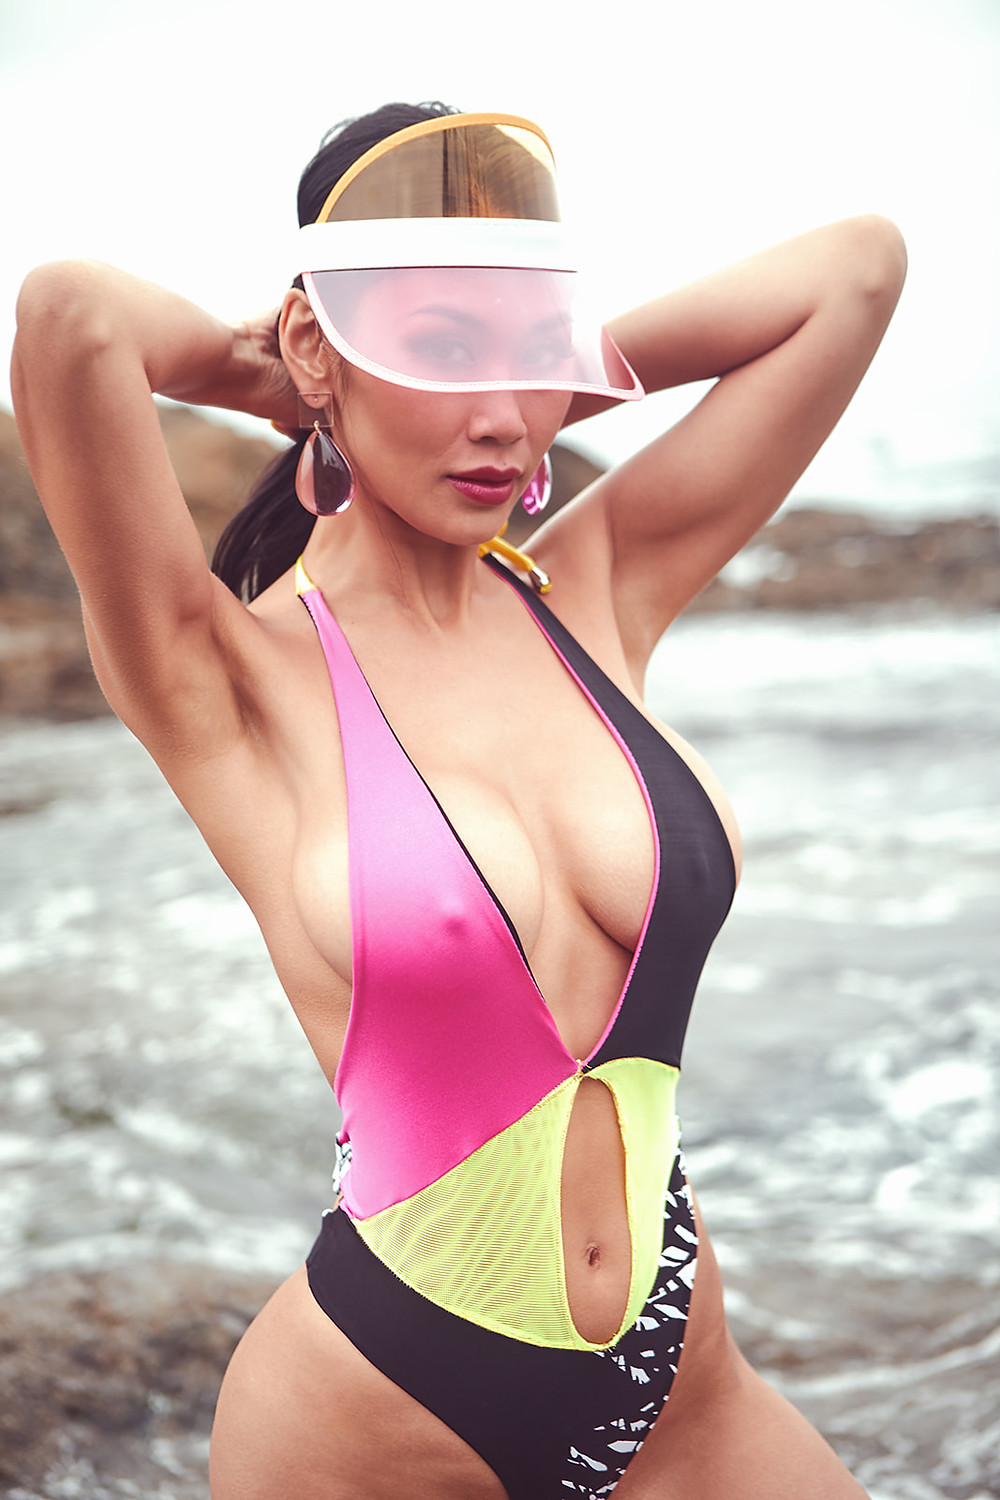 Model and fashion influencer Claire Reine Godard poses in a pink, yellow mesh, black, and zebra print bikini on the sand in Laguna Beach for a swimwear editorial shot by Patrick Patton for New Face Magazine July 2019.